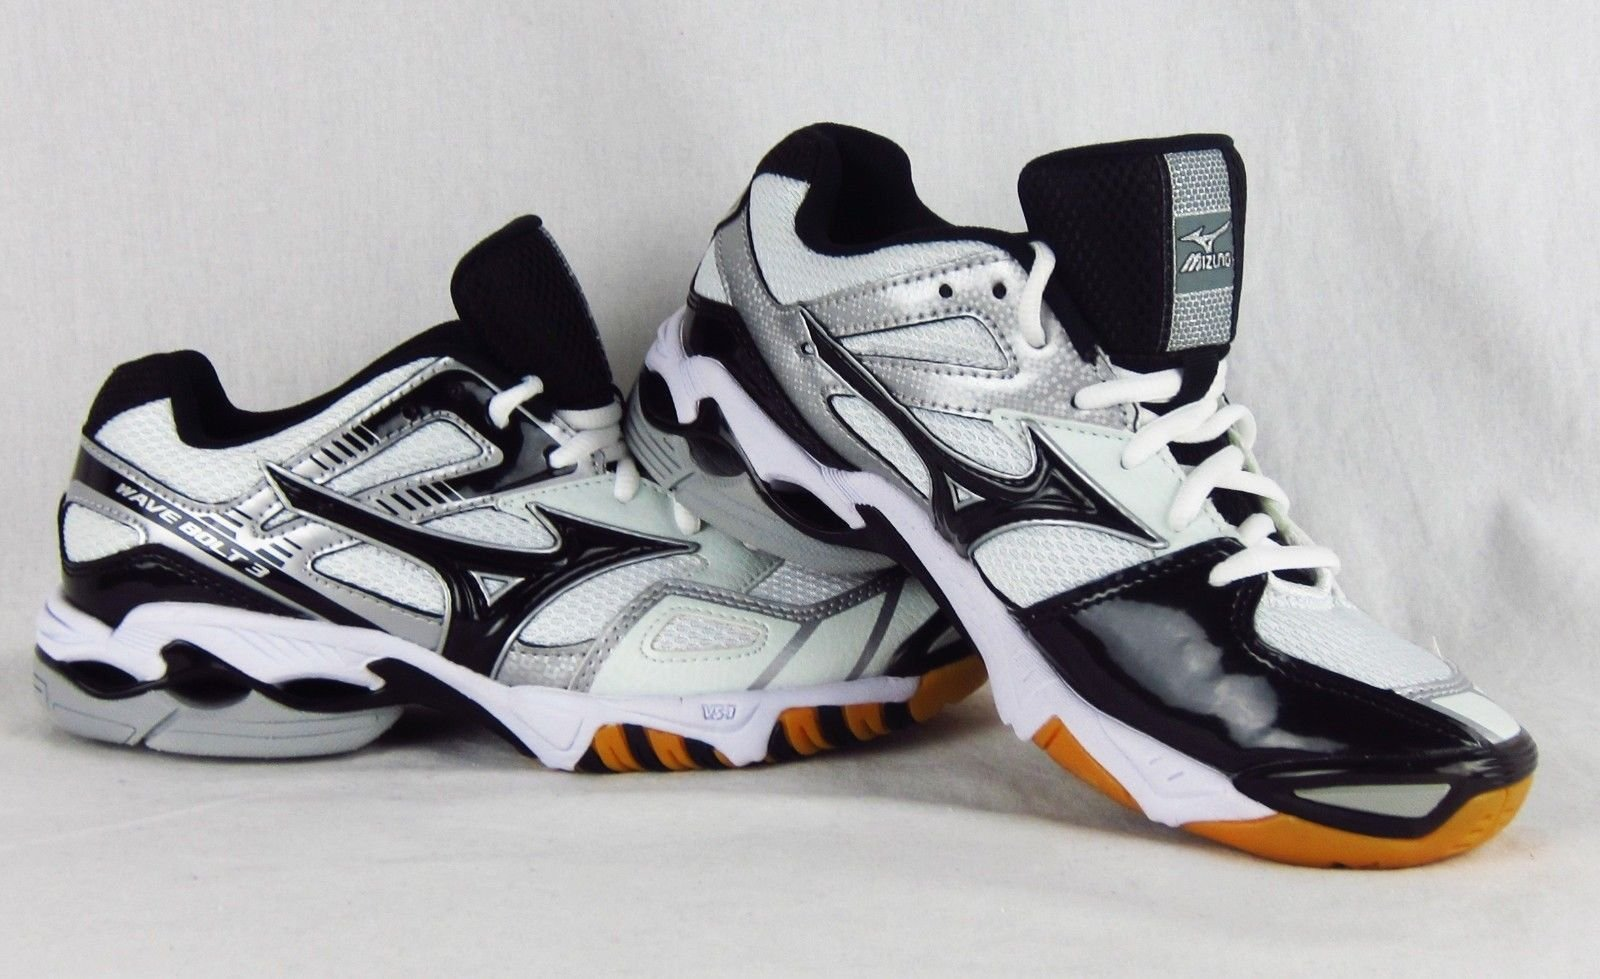 fe5219eaff1 New Womens Mizuno Wave Bolt 3 Volleyball Shoe Sneaker Black   White Size 6.5